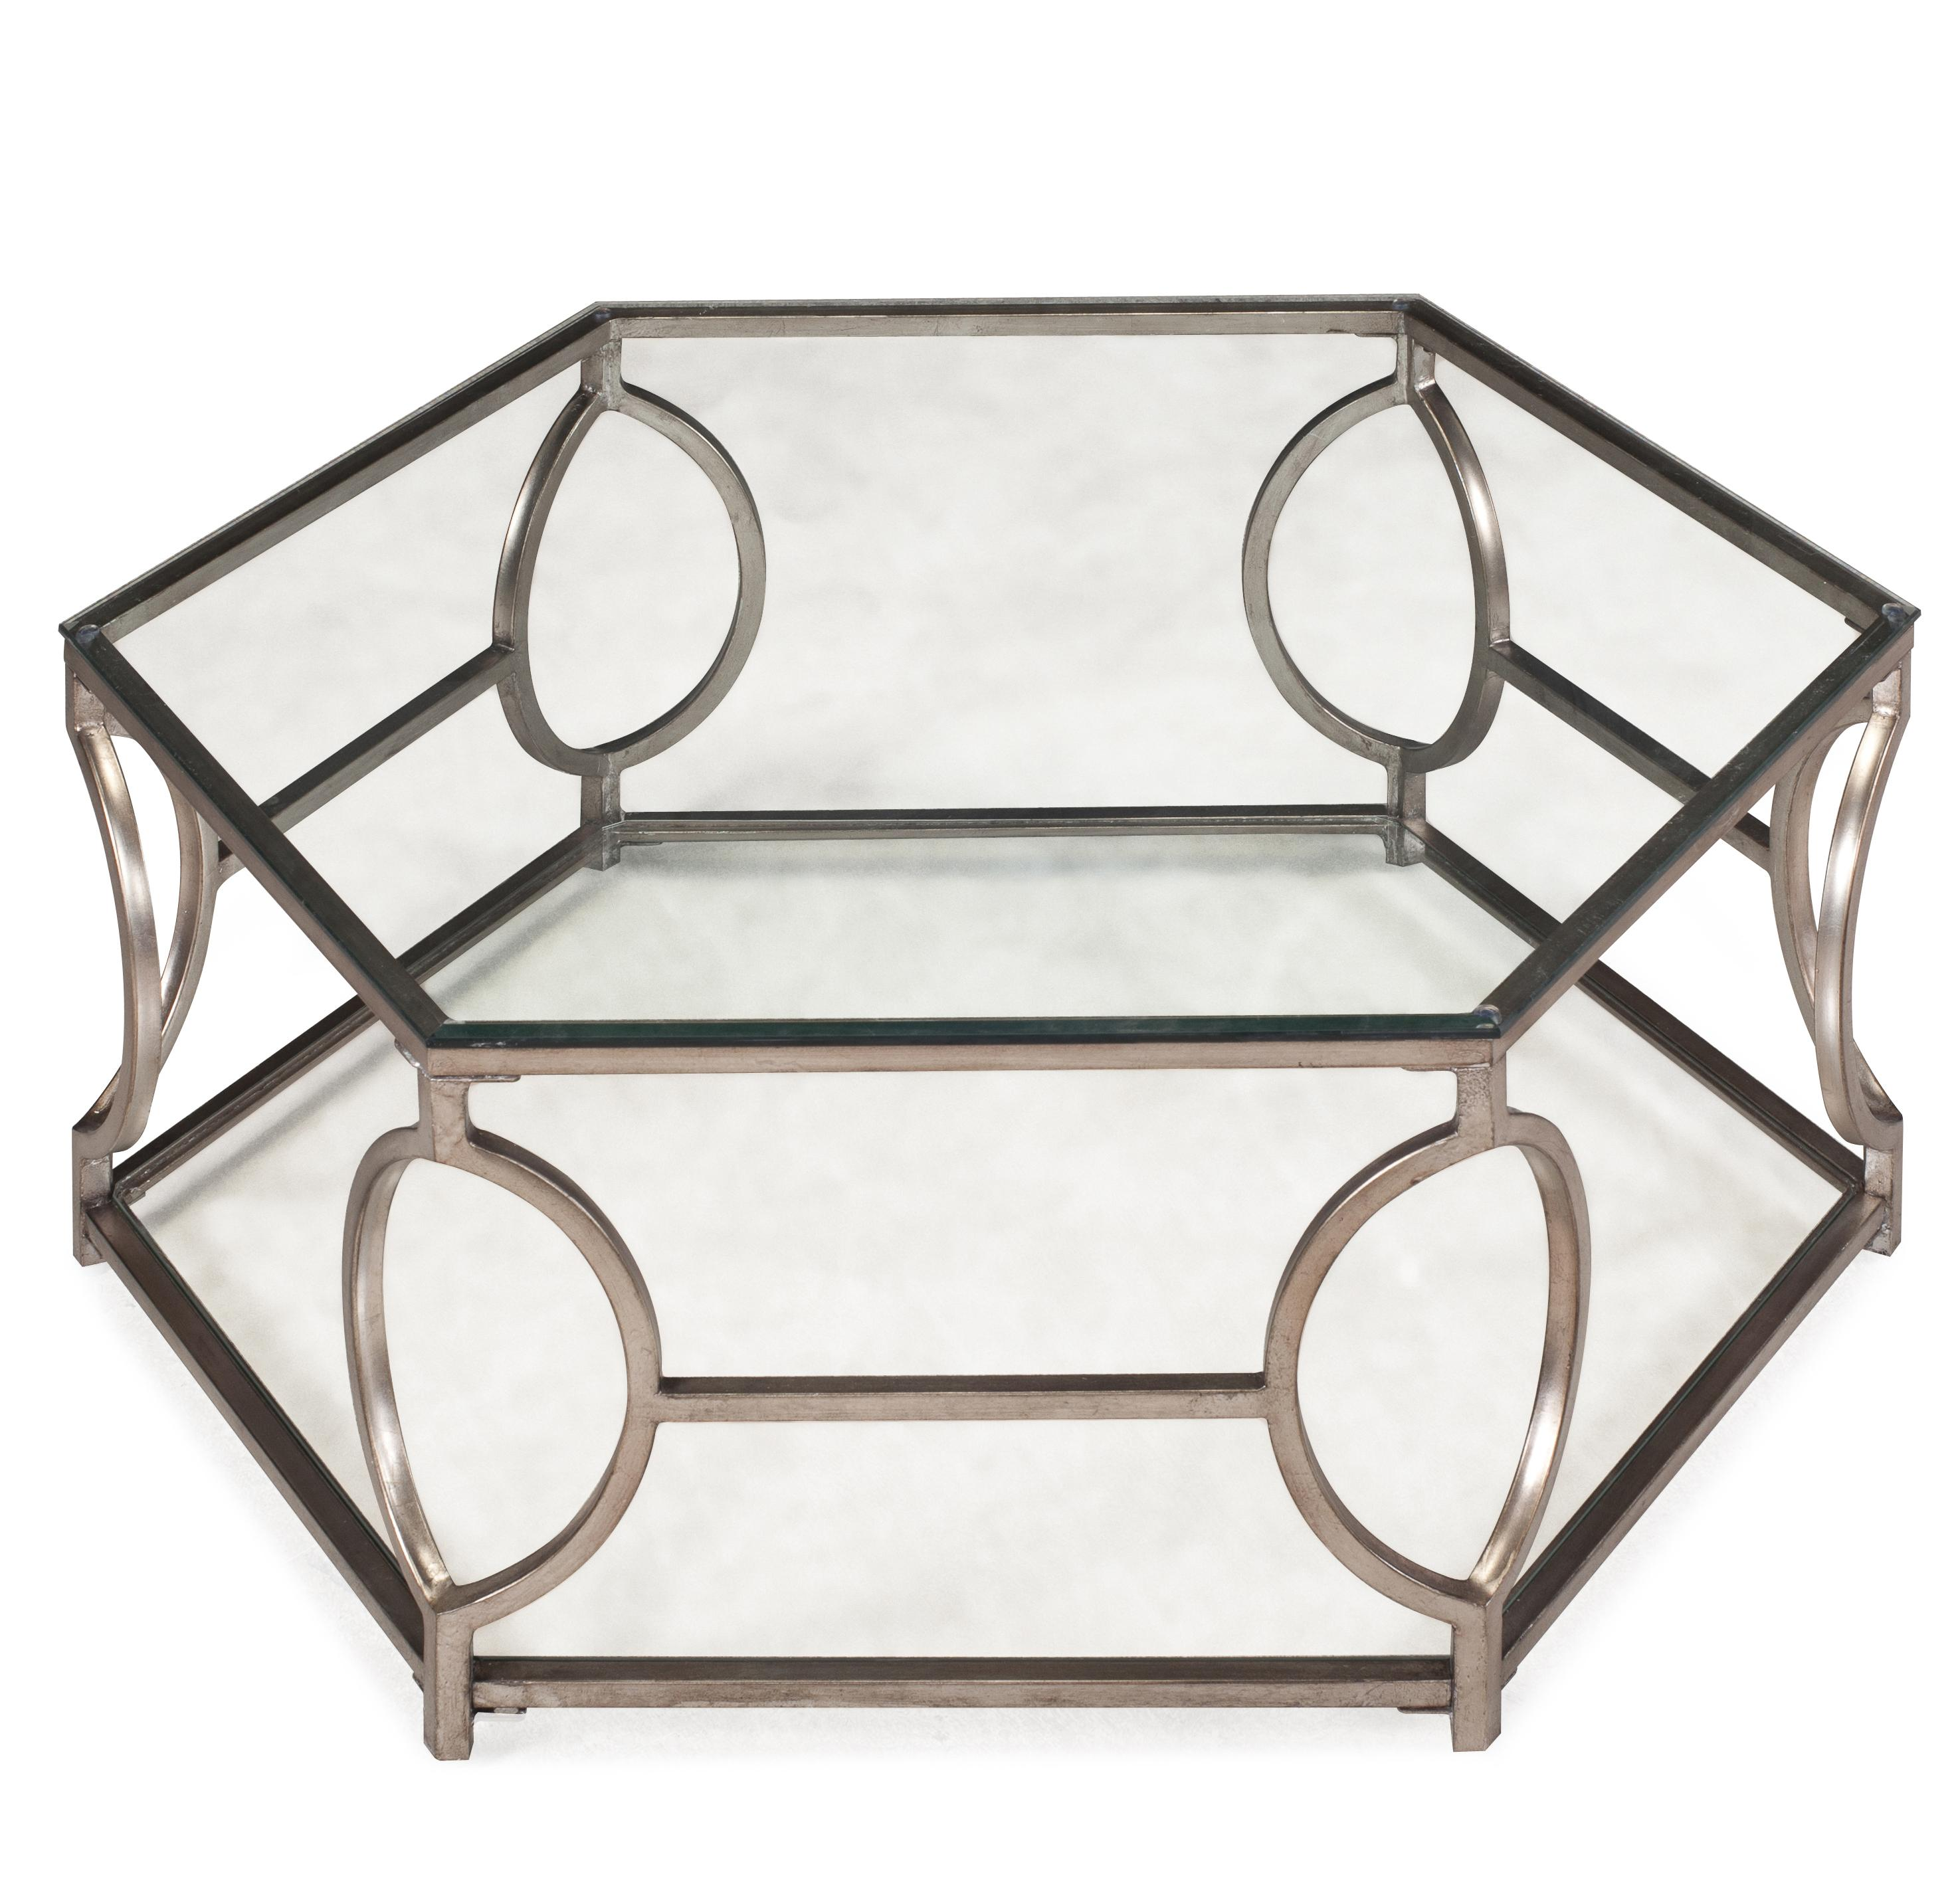 Belfort Select Nevelson Hexagonal Cocktail Table - Item Number: T2060-48B+48T